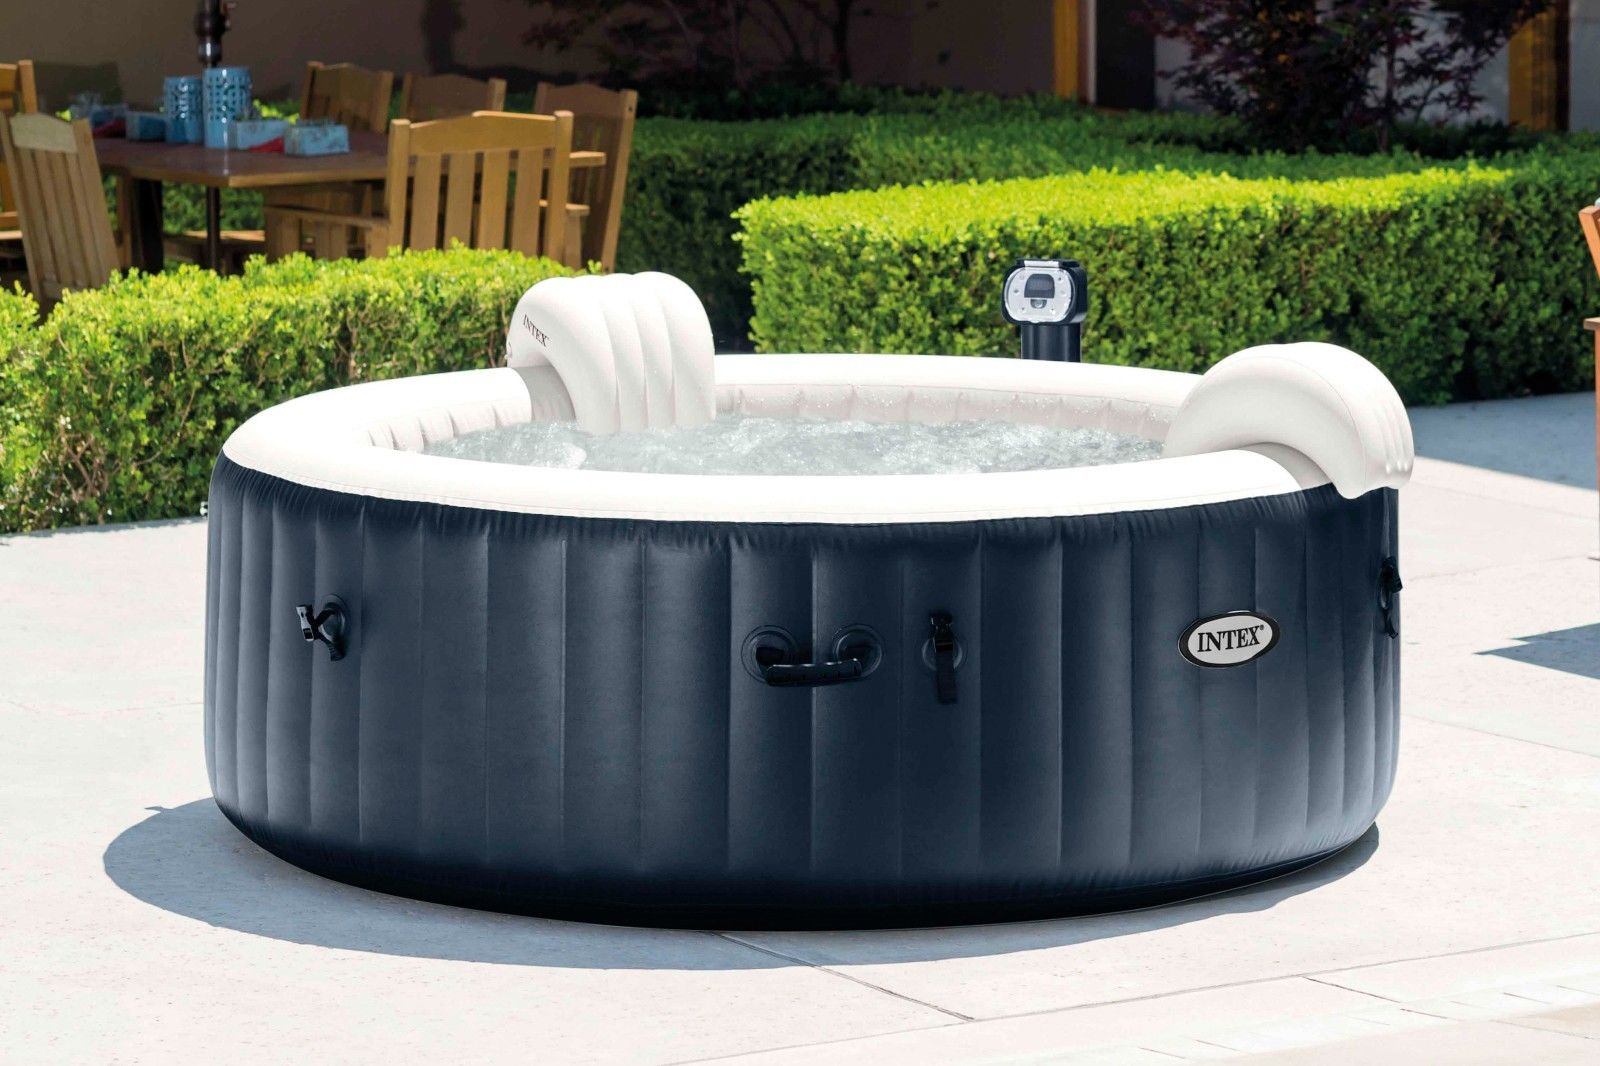 Jacuzzi Pool Pumps Intex Pure Spa 4 Person Inflatable Portable Heated Bubble